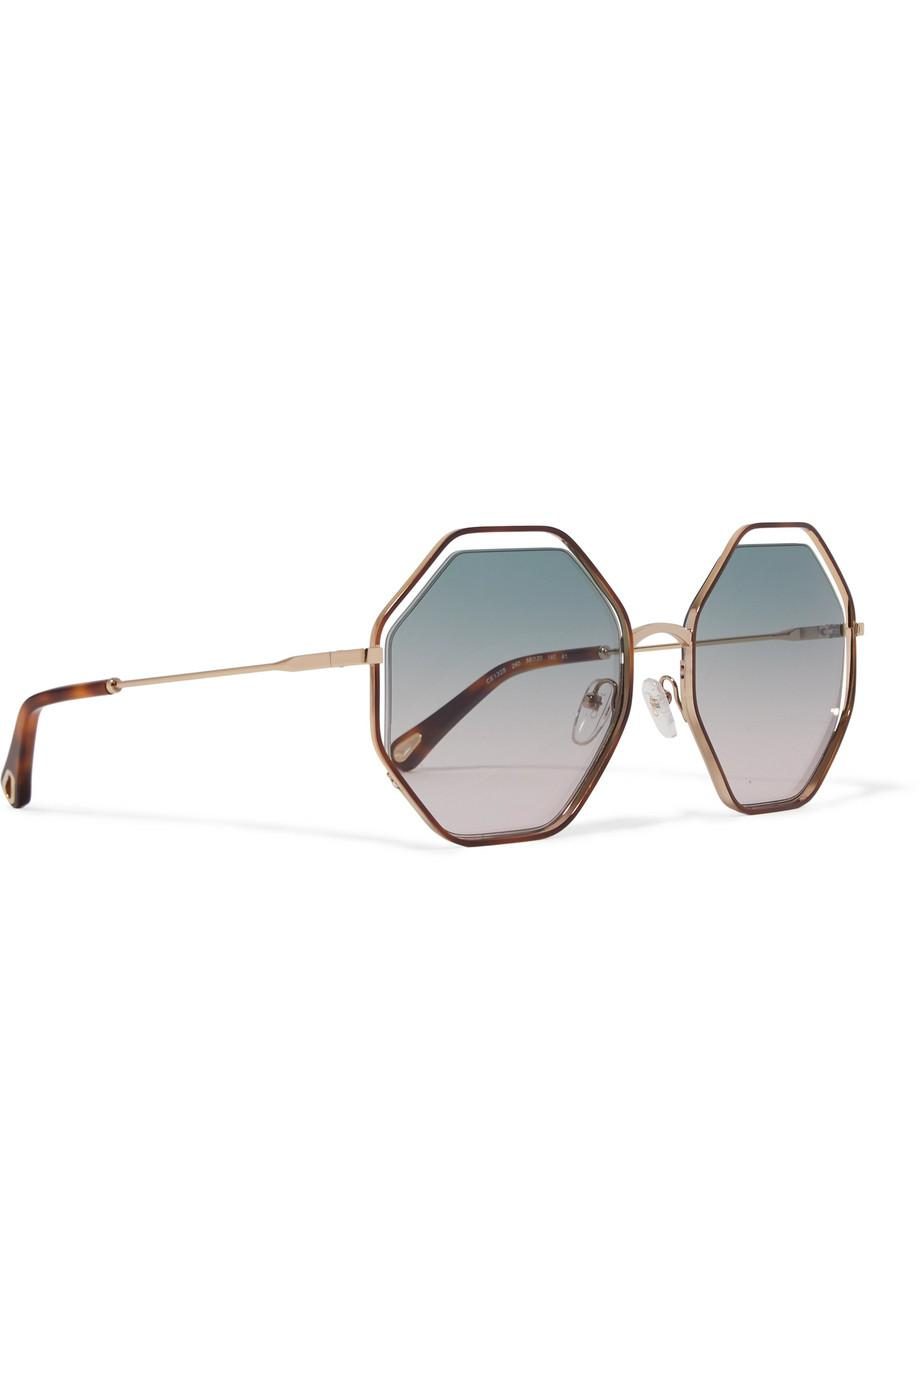 3b59edf53d10 Lyst - Chloé Poppy Octagon-frame Acetate And Gold-tone Sunglasses in ...